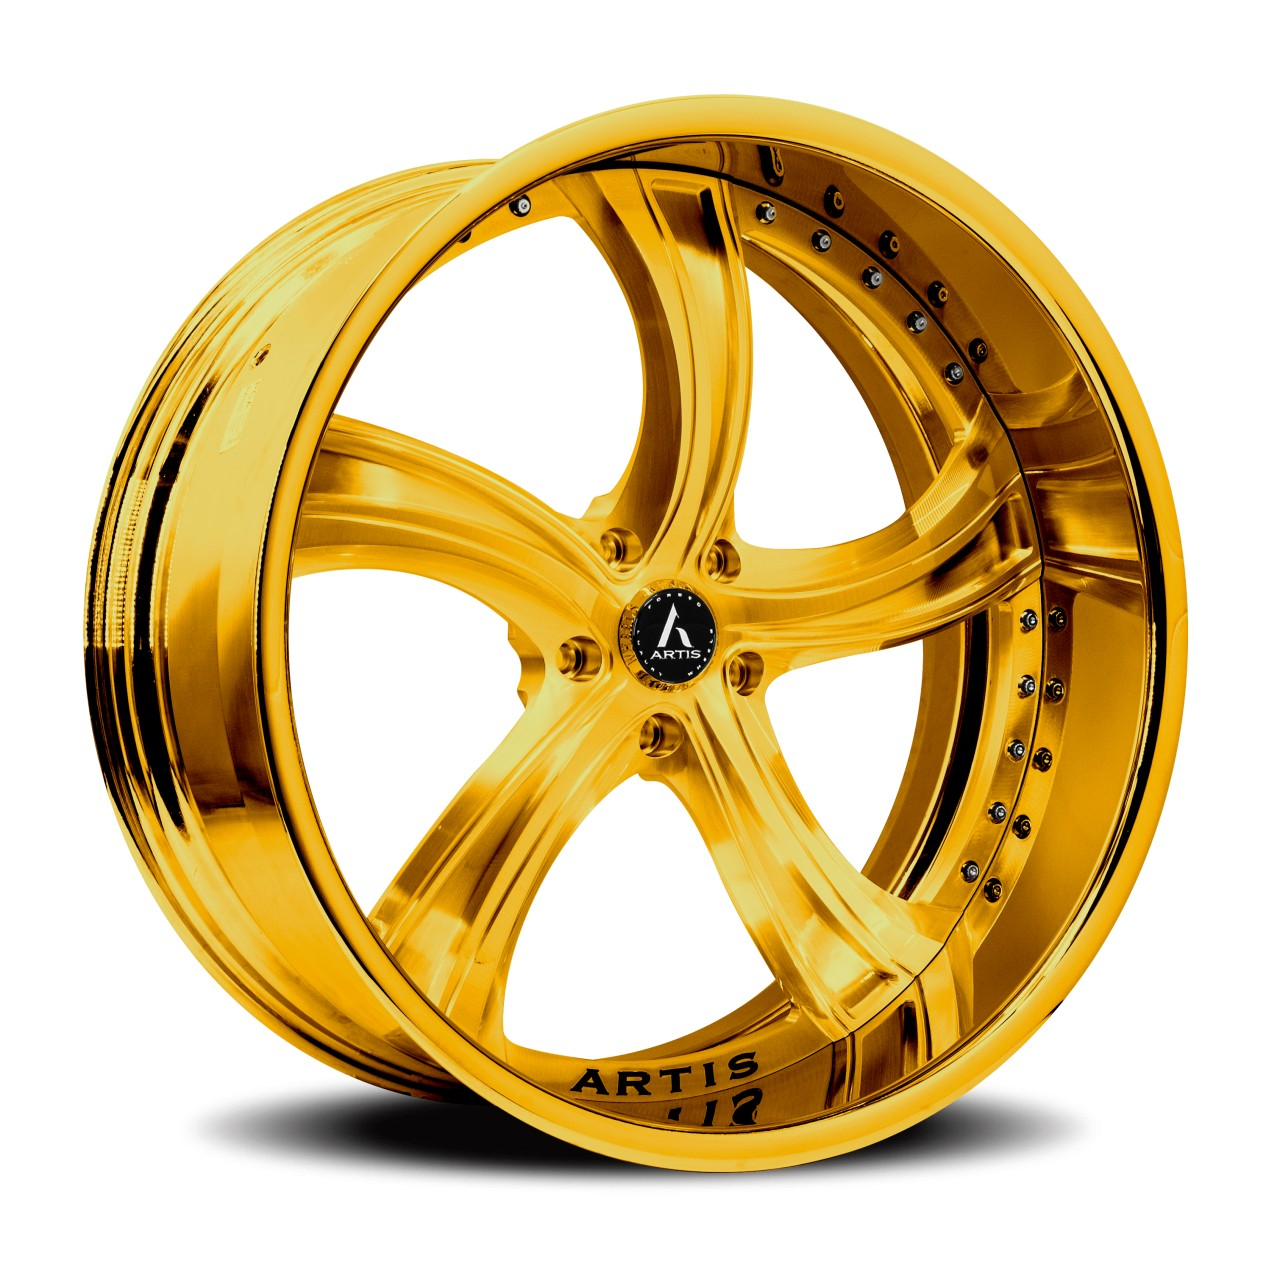 Artis Forged Kokomo wheel with Gold finish